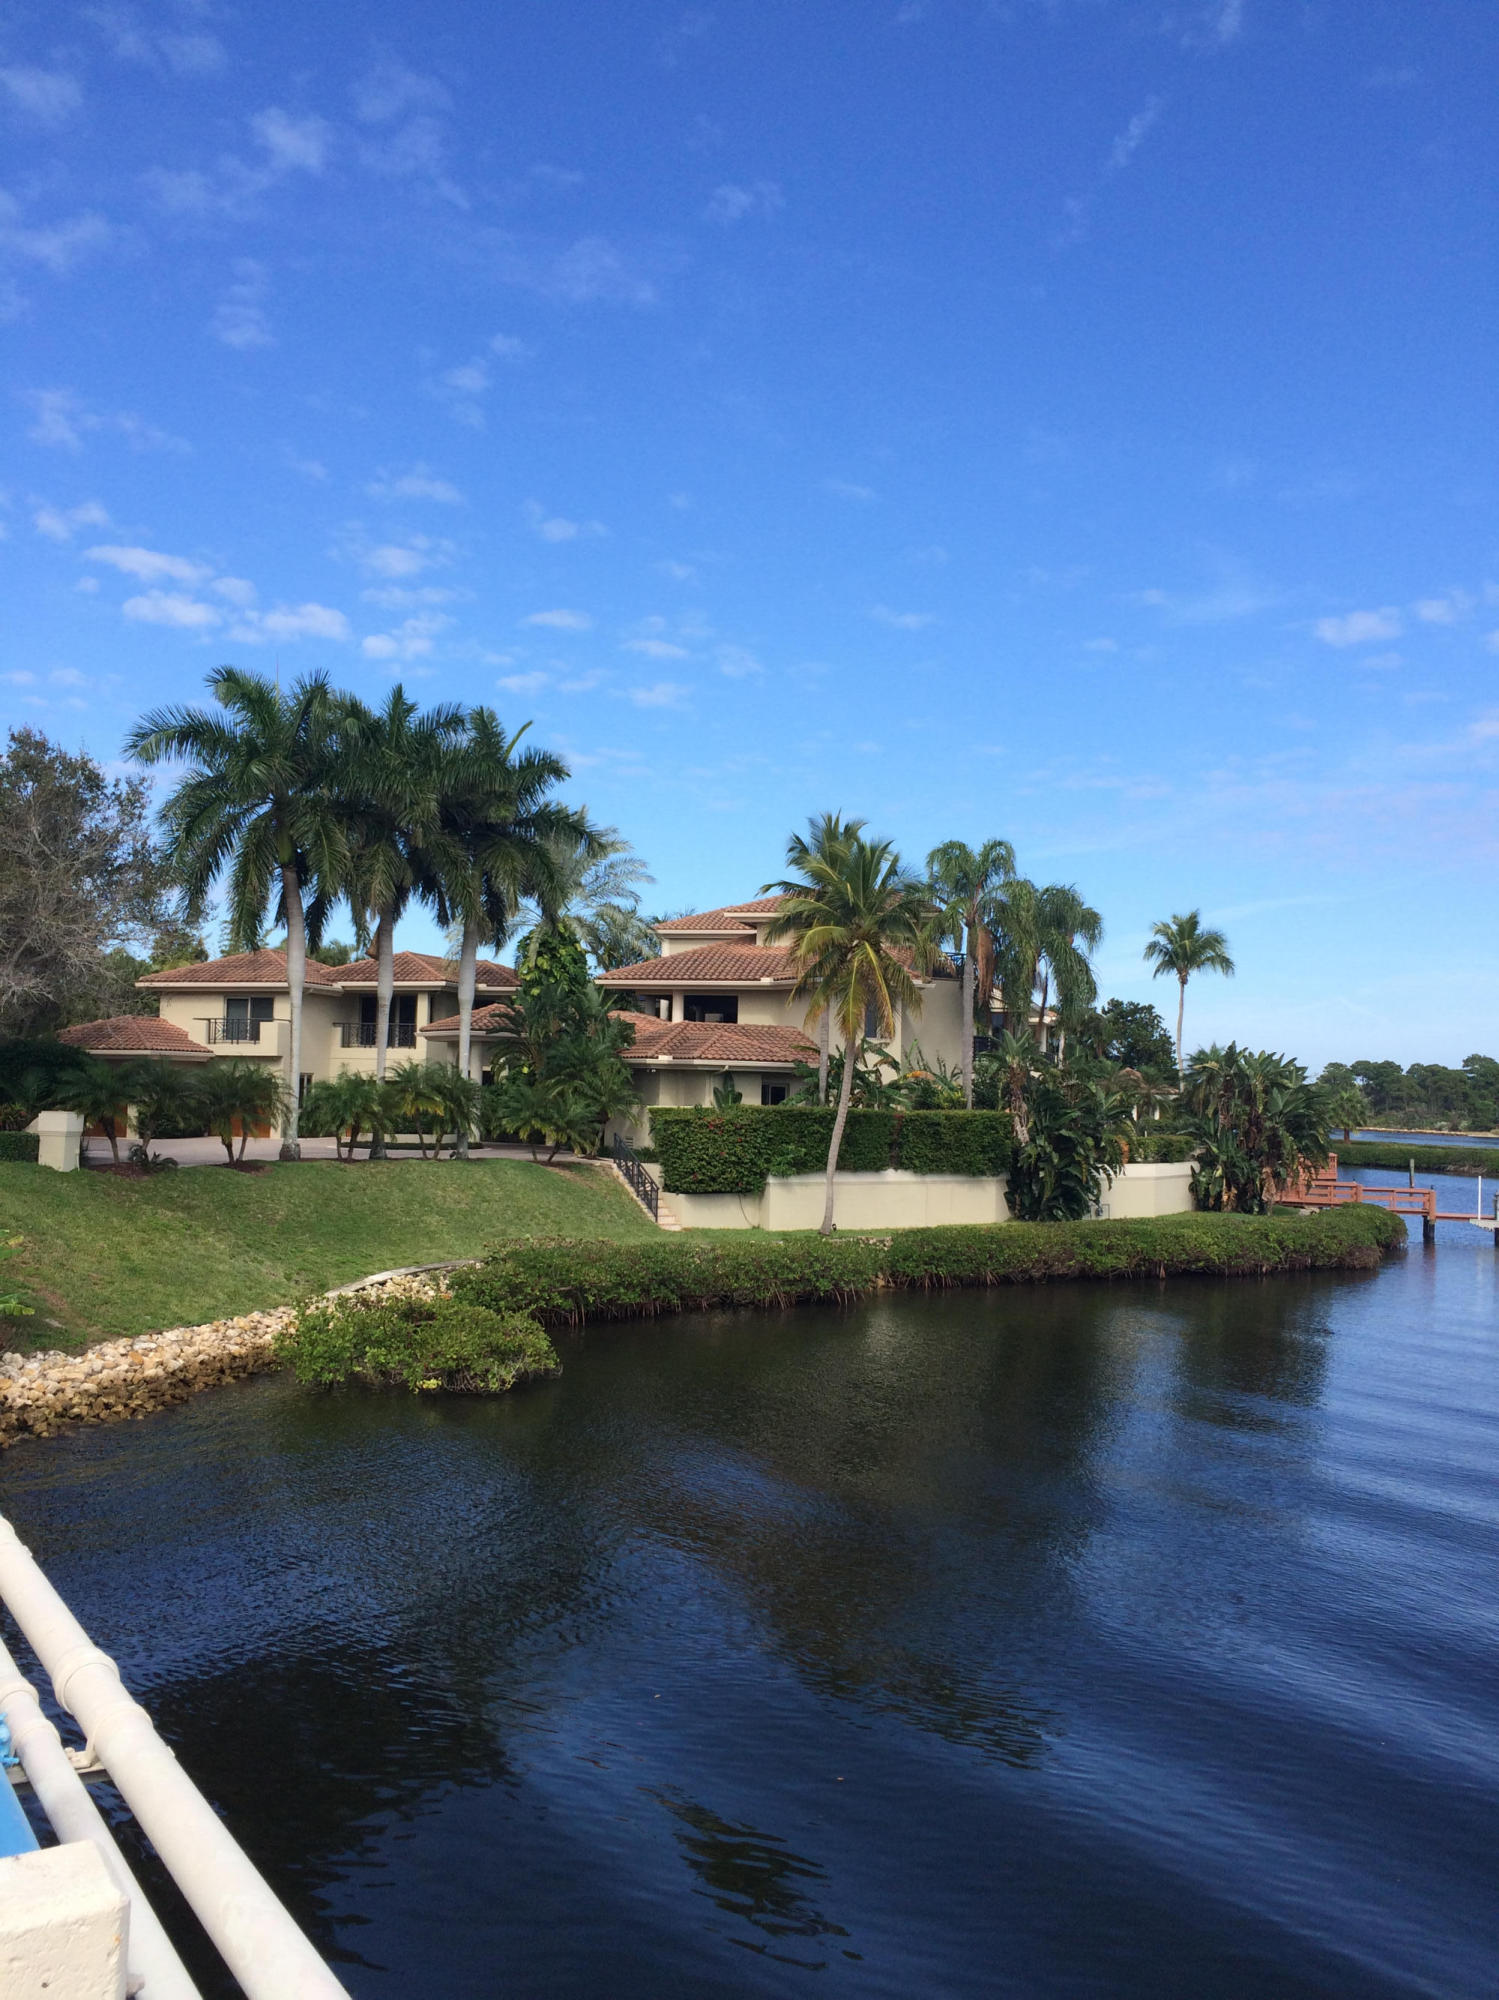 New Home for sale at 217 Commodore Drive in Jupiter